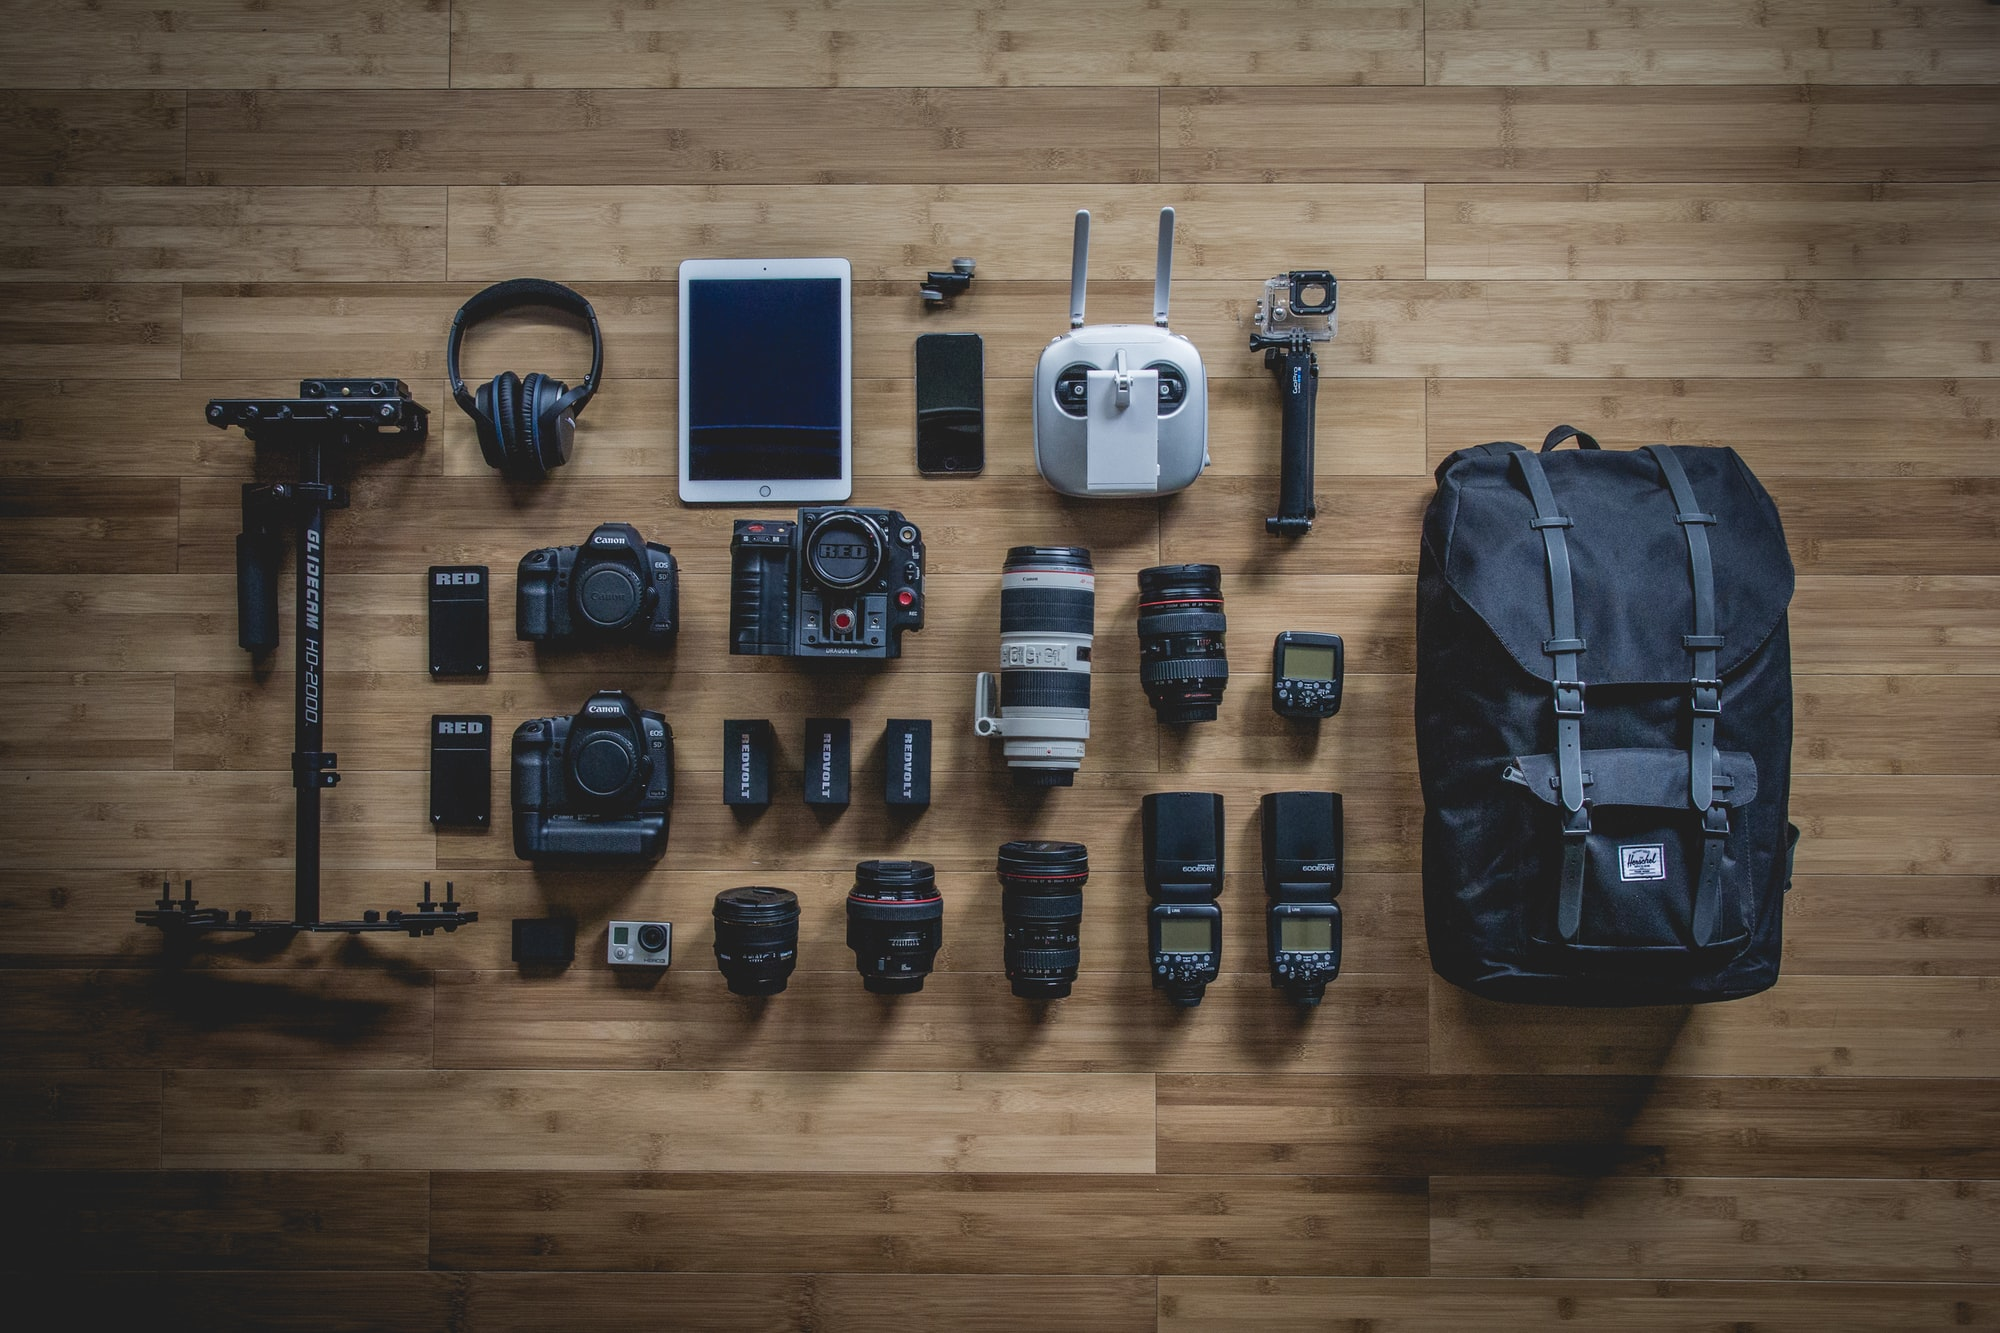 How to record an equipment purchase in Quickbooks